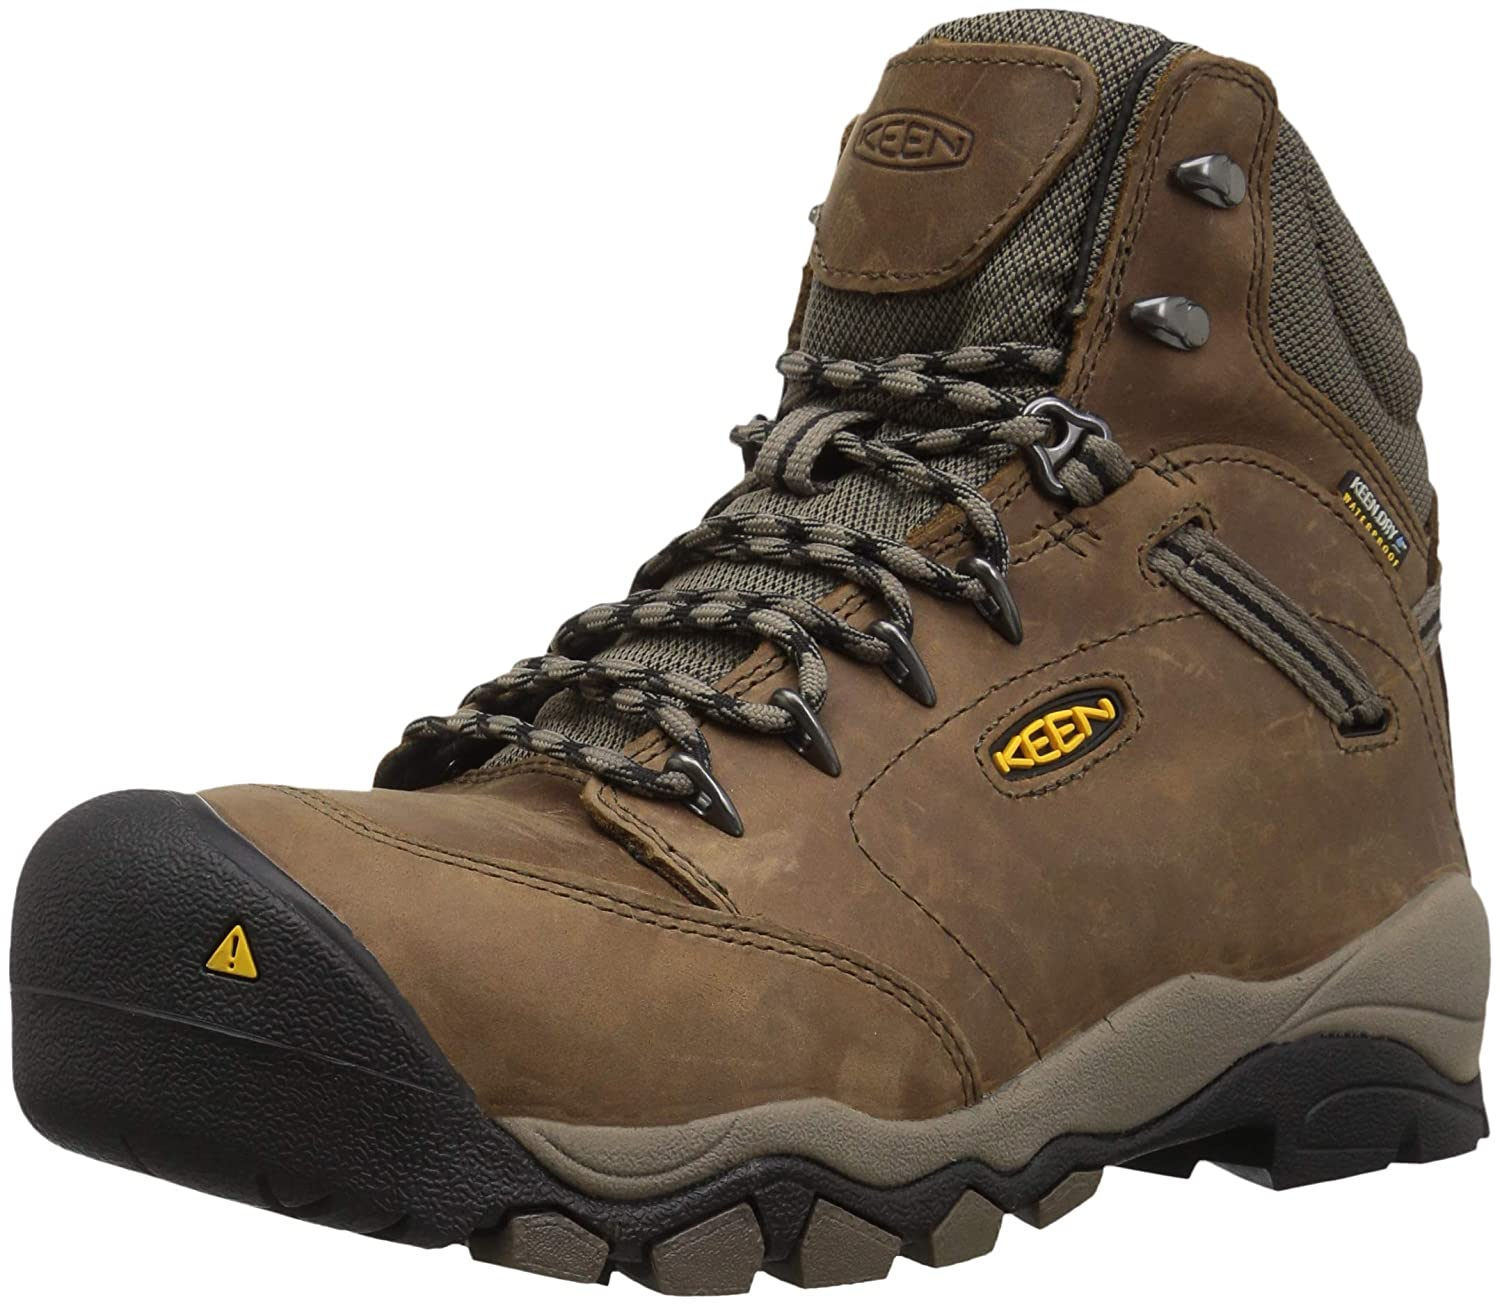 2baefb9e5a1f Amazon.com  Keen Utility Women s Canby AT Waterproof Industrial and  Construction Shoe  Shoes